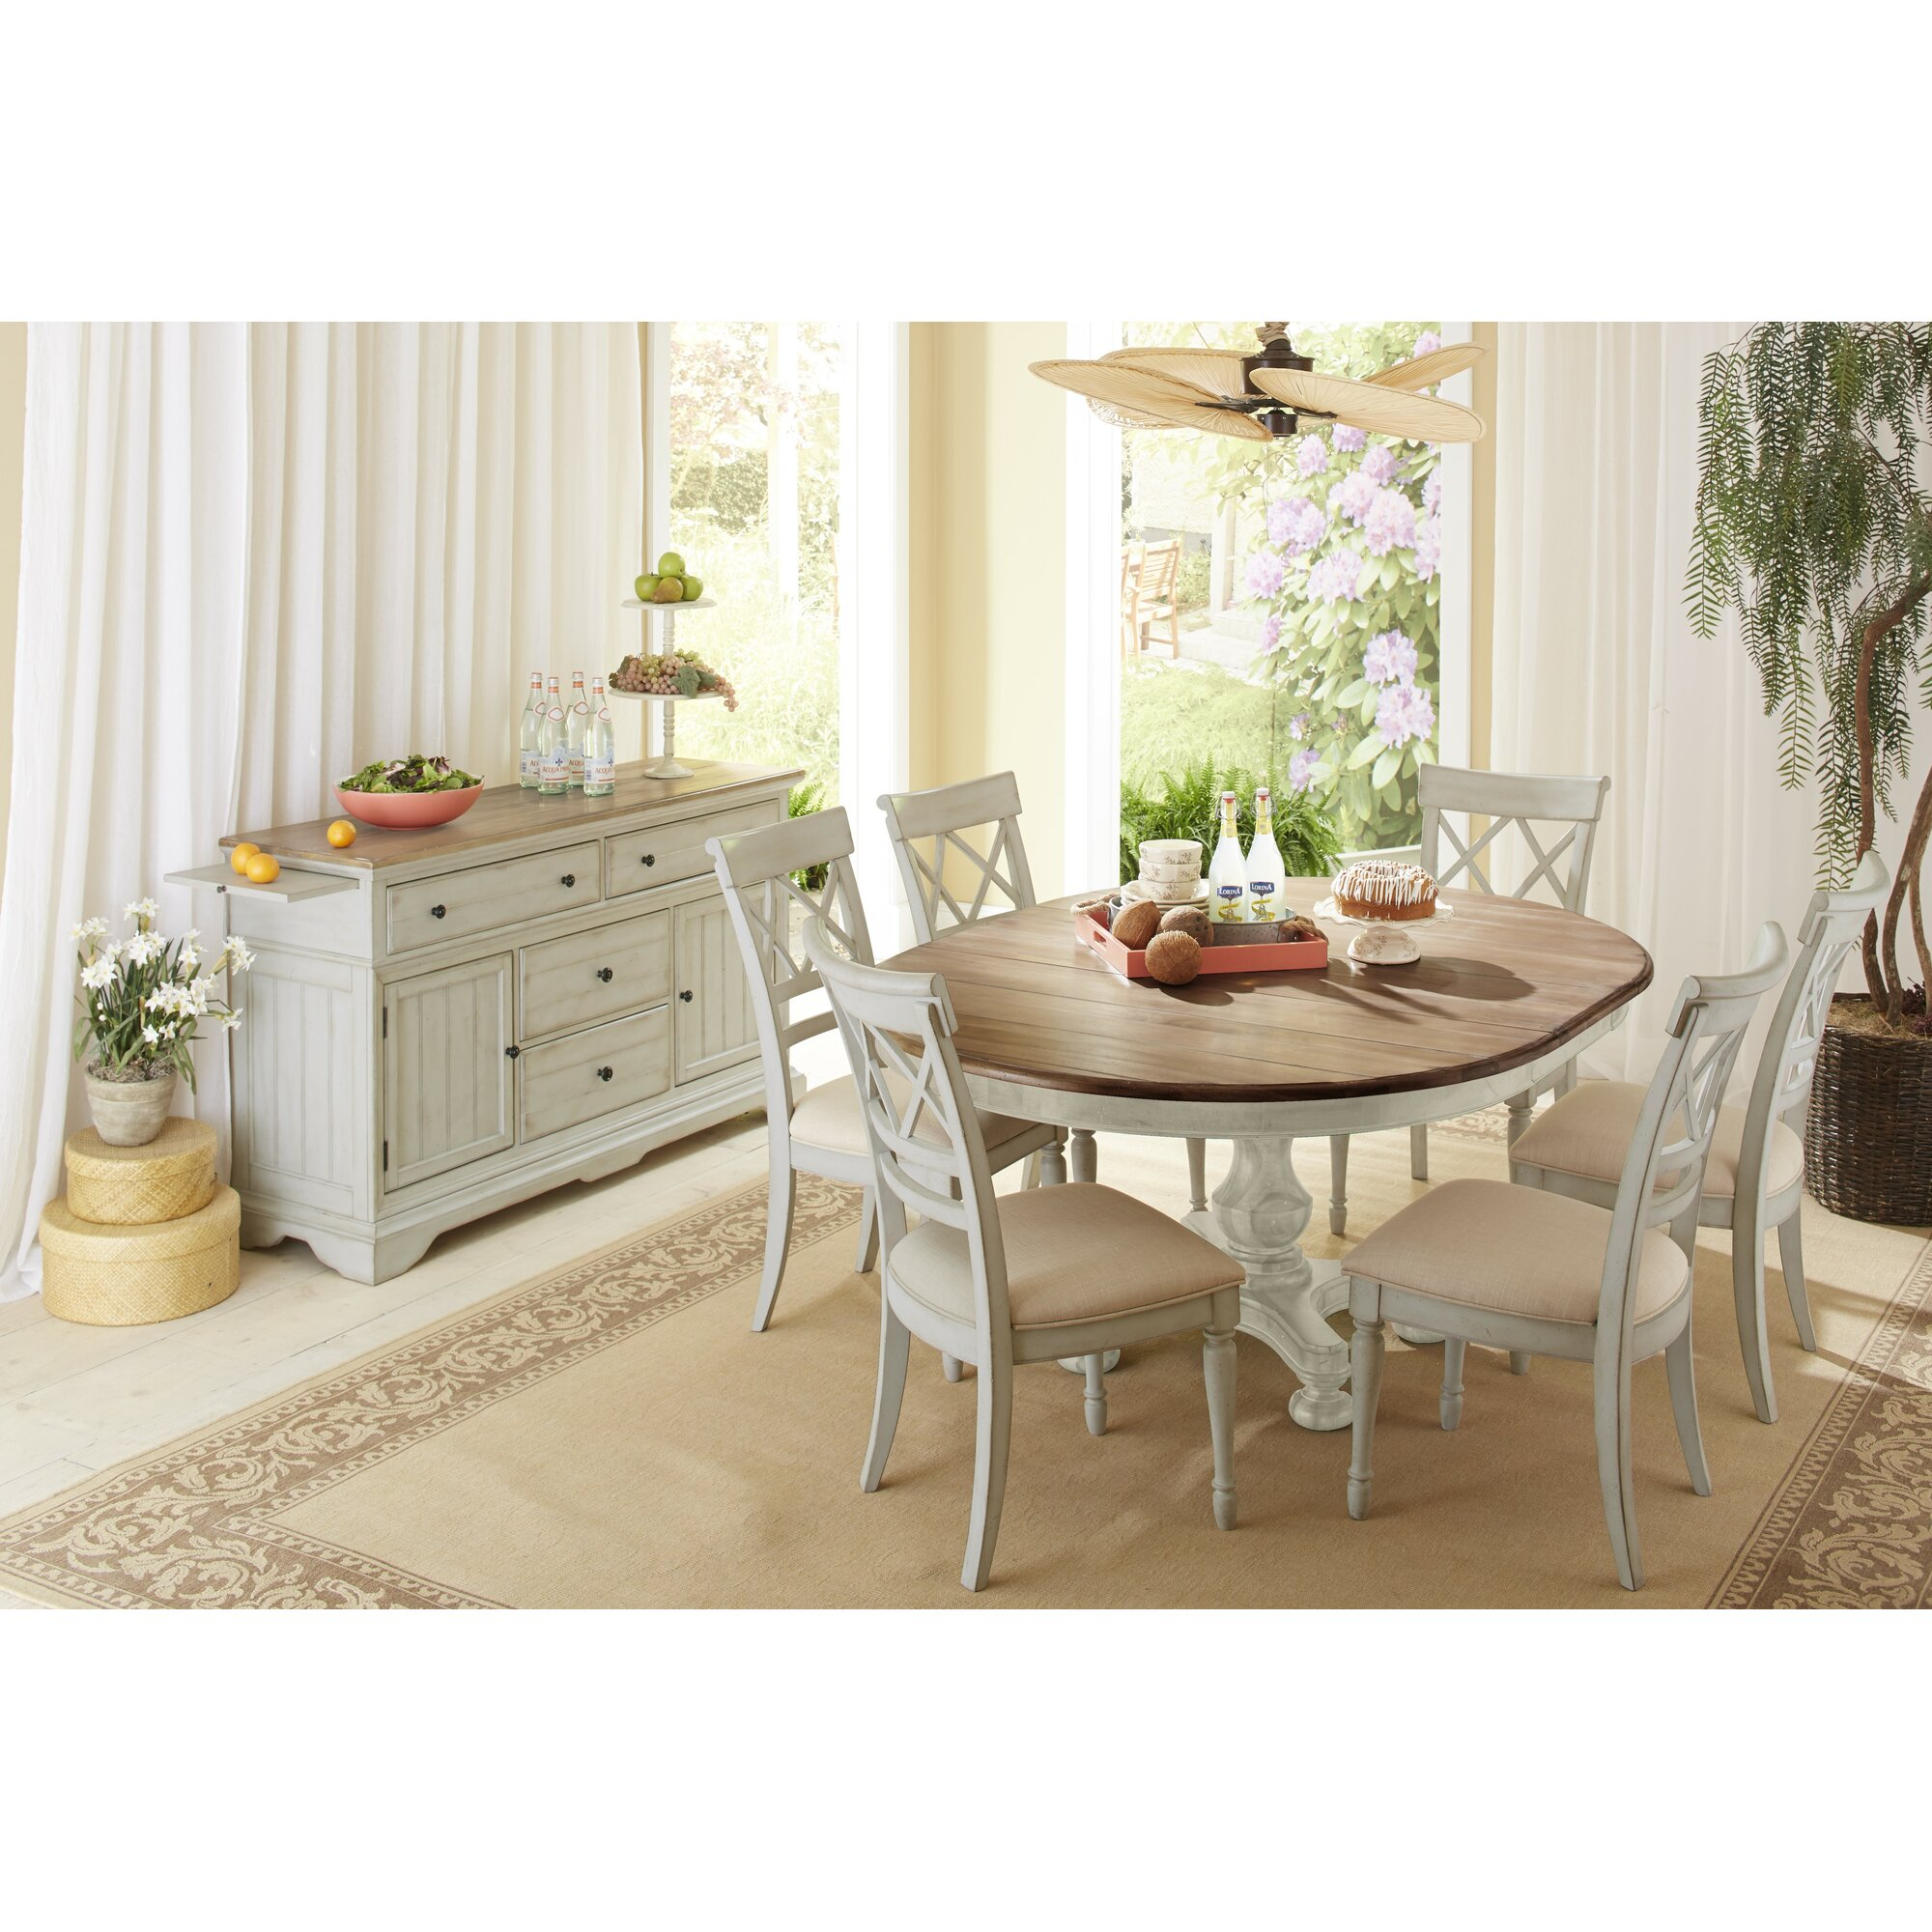 Cottage Dining Room Sets: Cresent Furniture Cottage 7 Piece Dining Set & Reviews